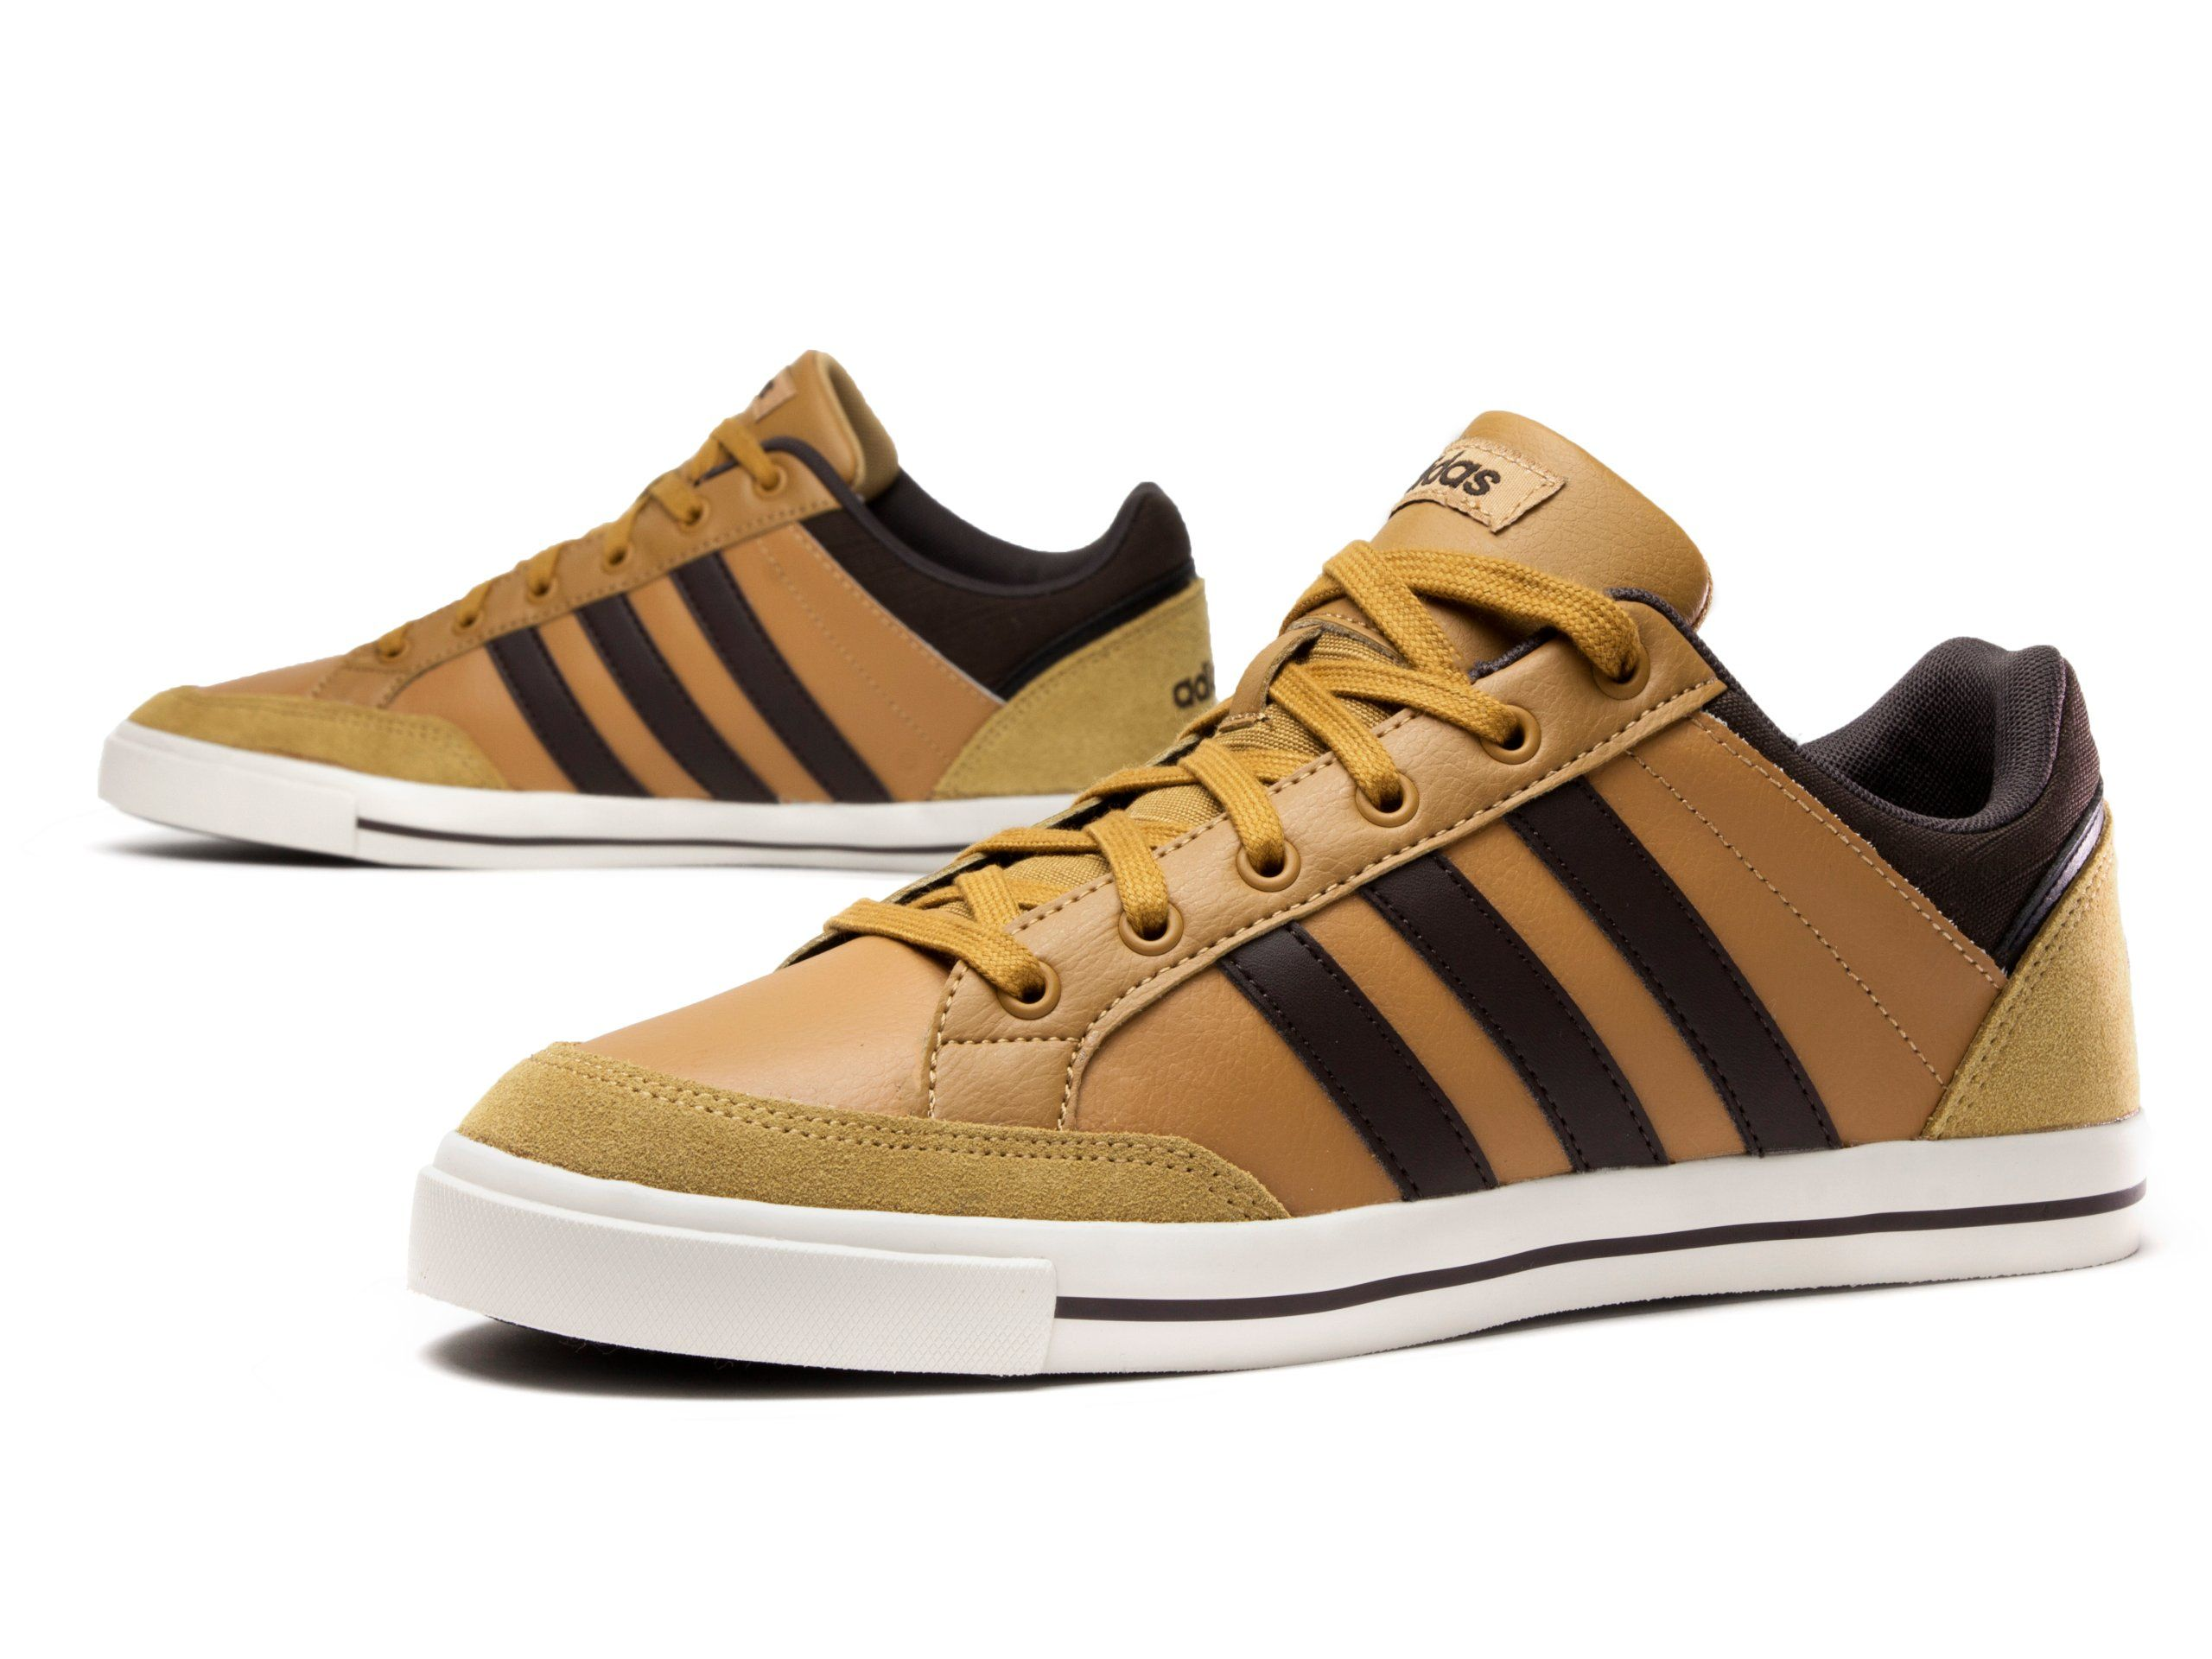 Buty Trampki Meskie Adidas Cacity Aw4975 Nowosc 6356610538 Oficjalne Archiwum Allegro Shoes 2016 Shoes High Top Sneakers